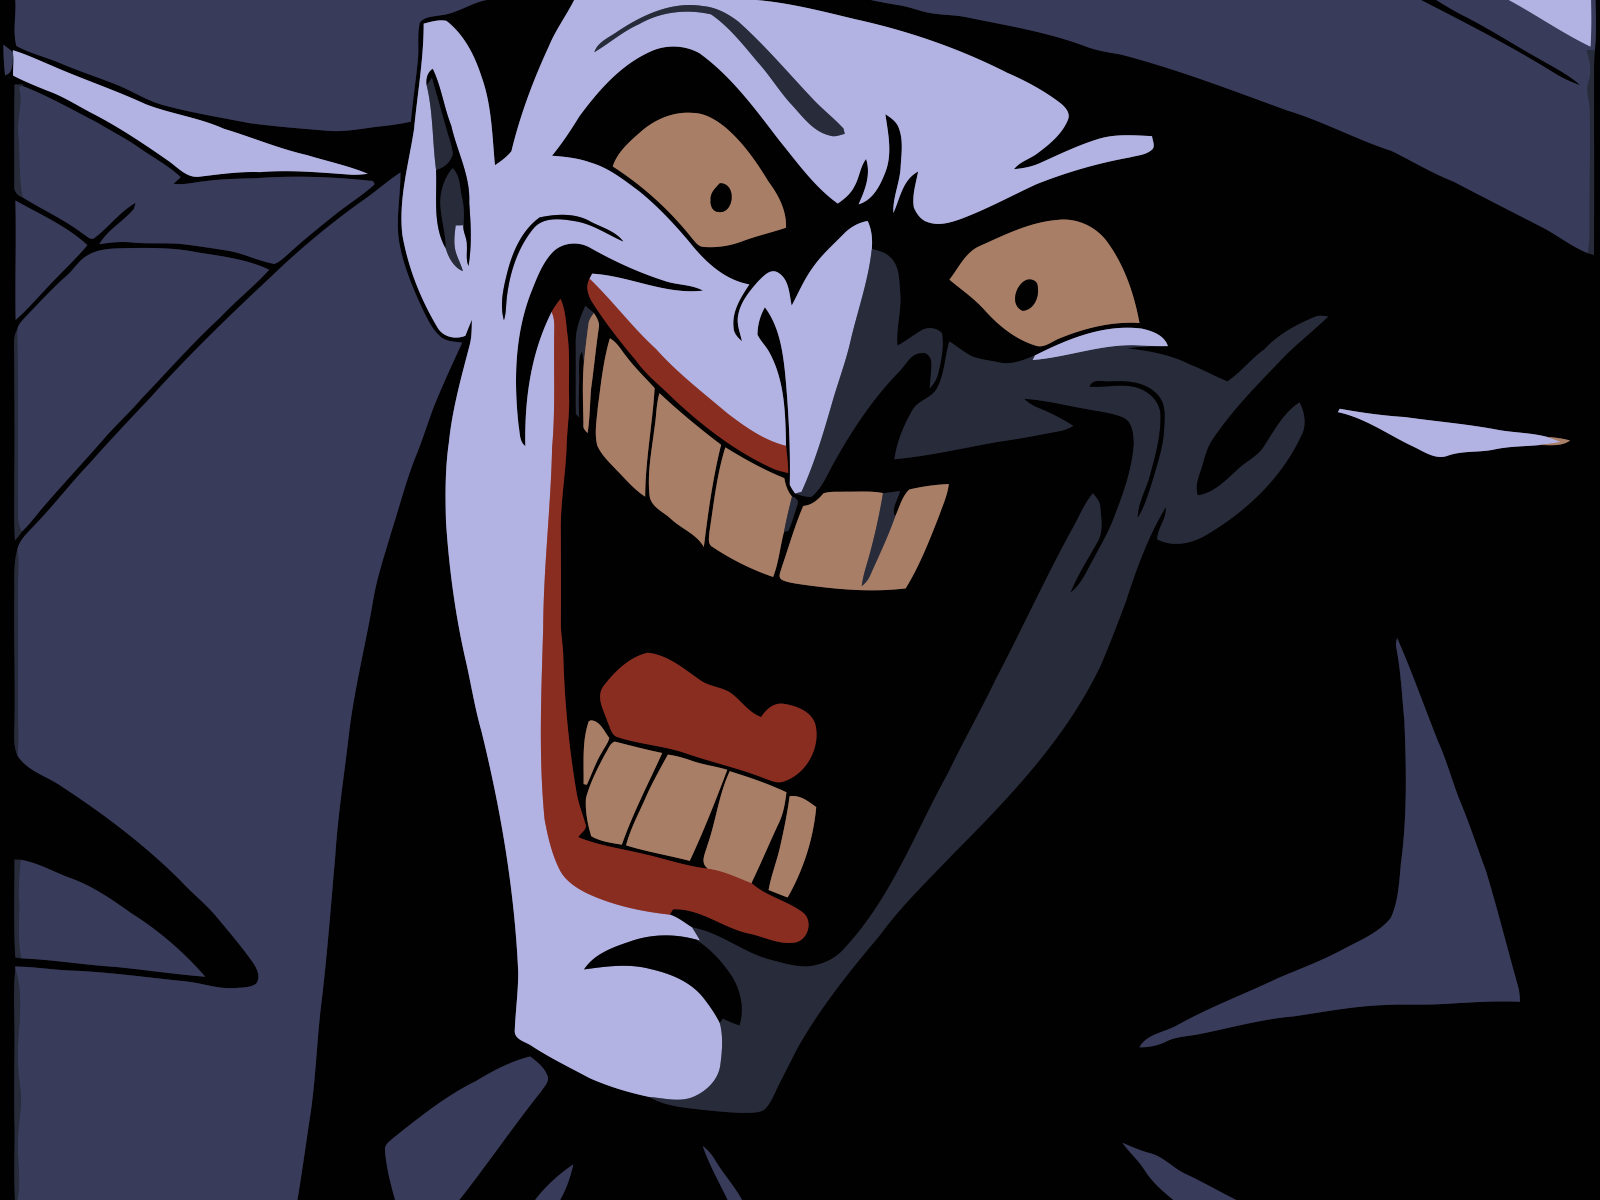 Joker clipart batman animated series #1